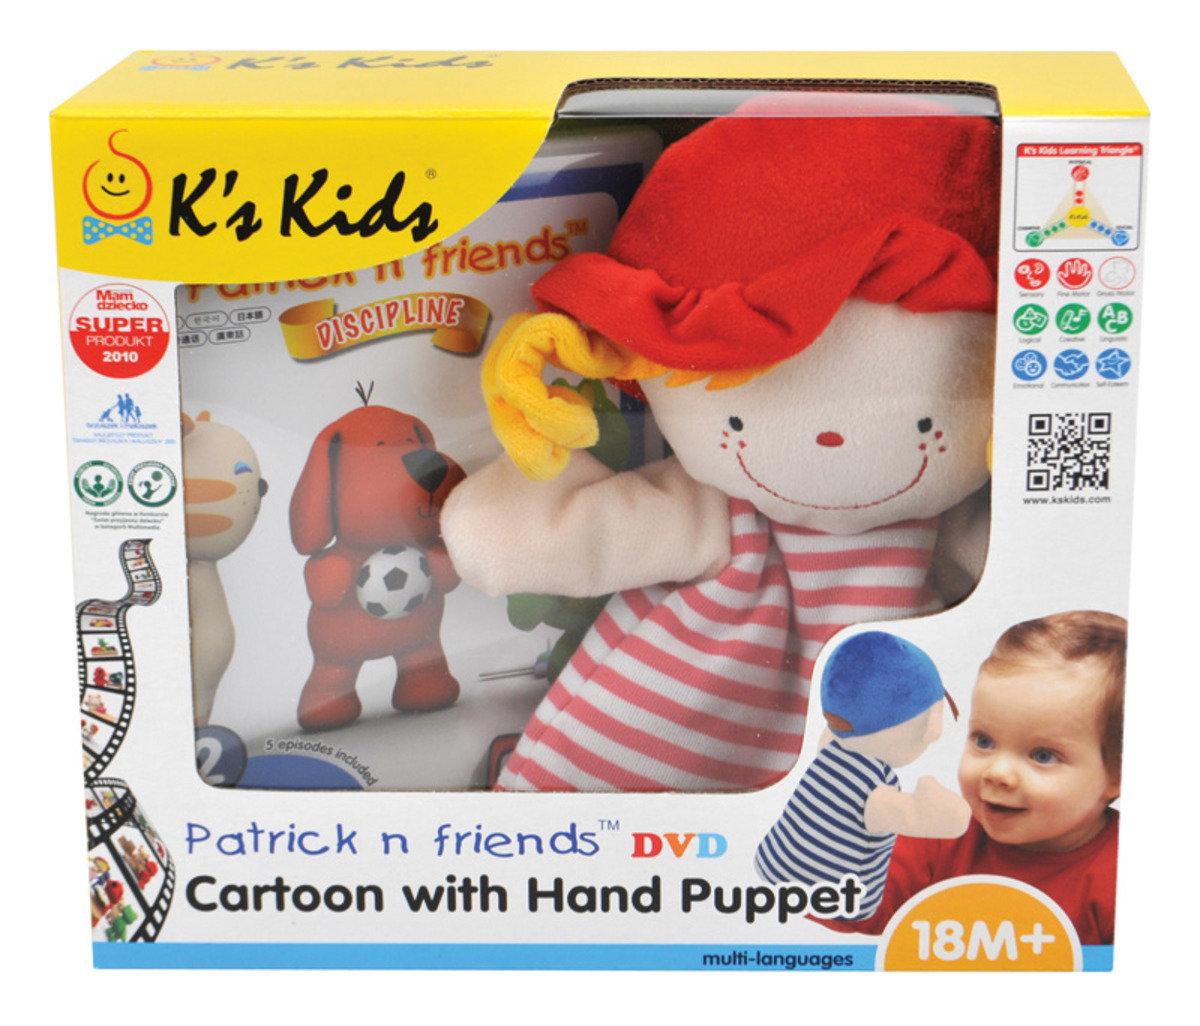 KC91104-Patrick n Friends DVD Cartoon with Hand Puppet - Julia